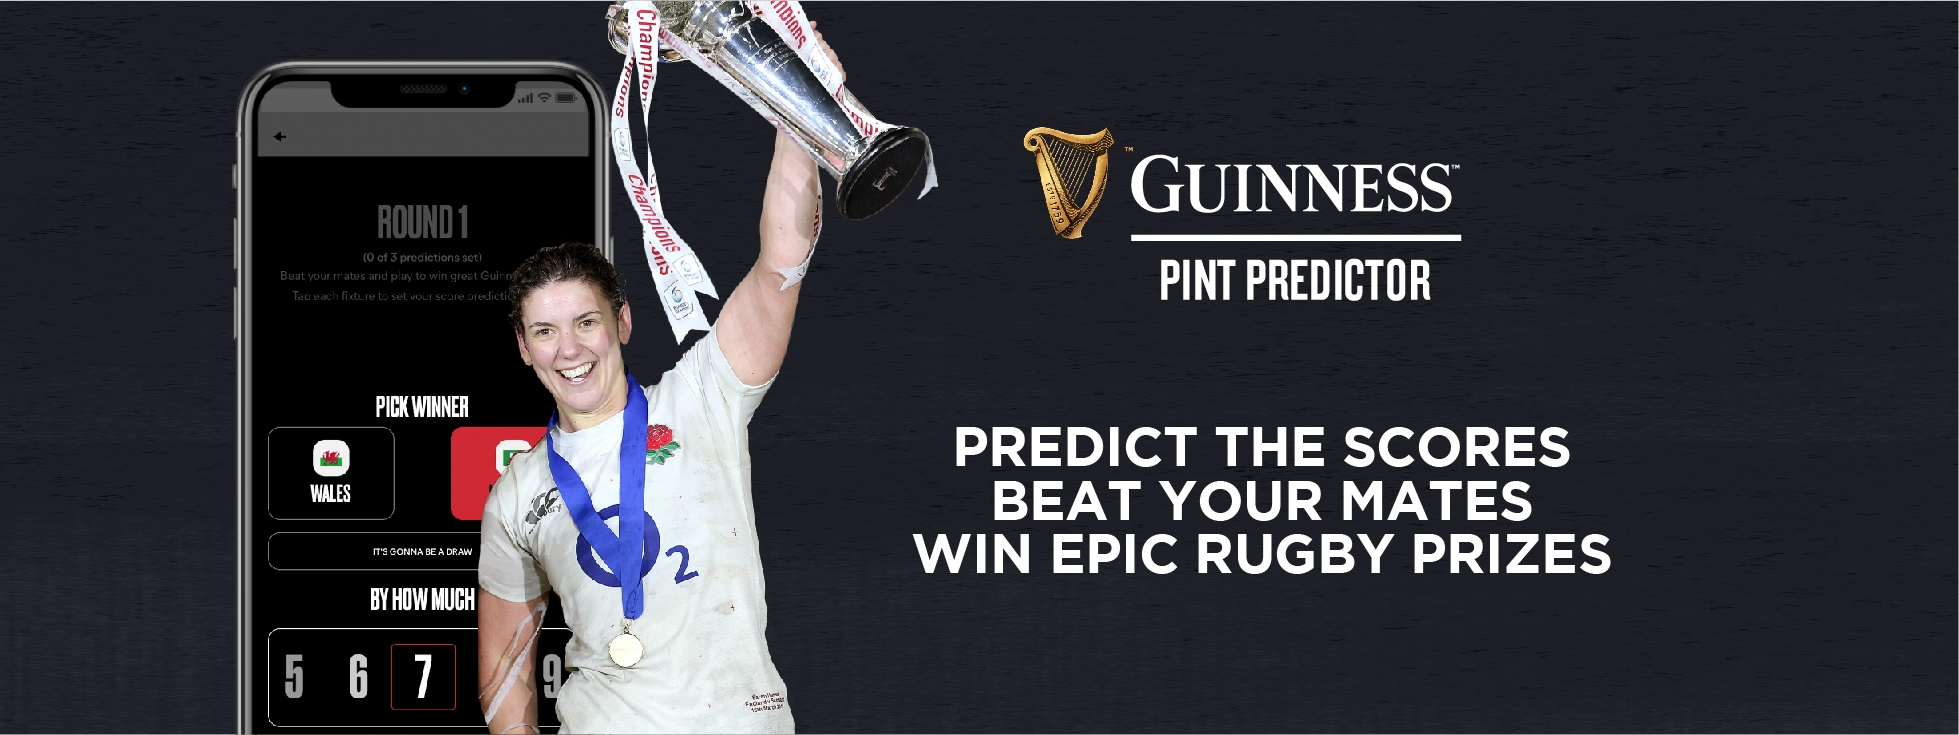 Guinness Pint Predictor - How To Play